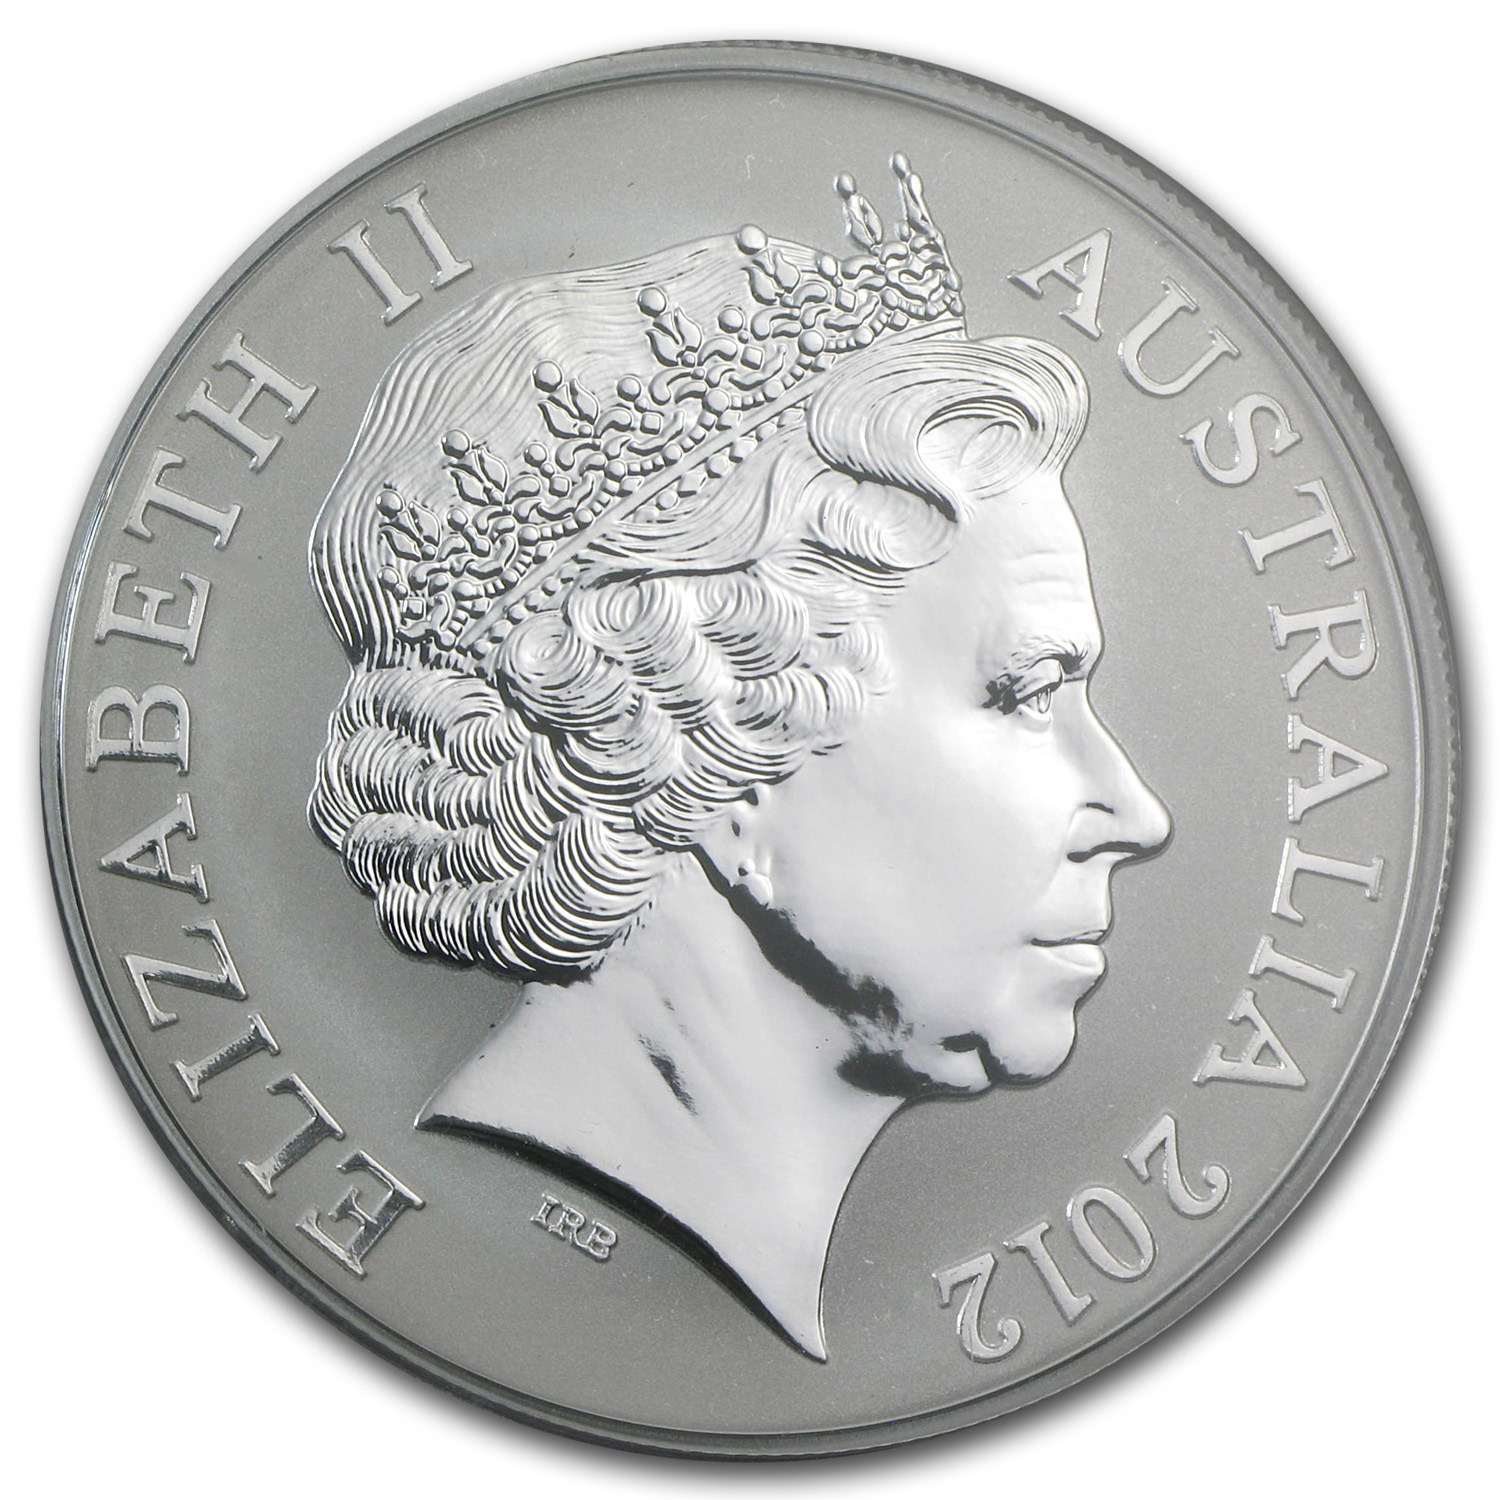 2012 1 oz Australian Silver Kangaroo (In Display Card)